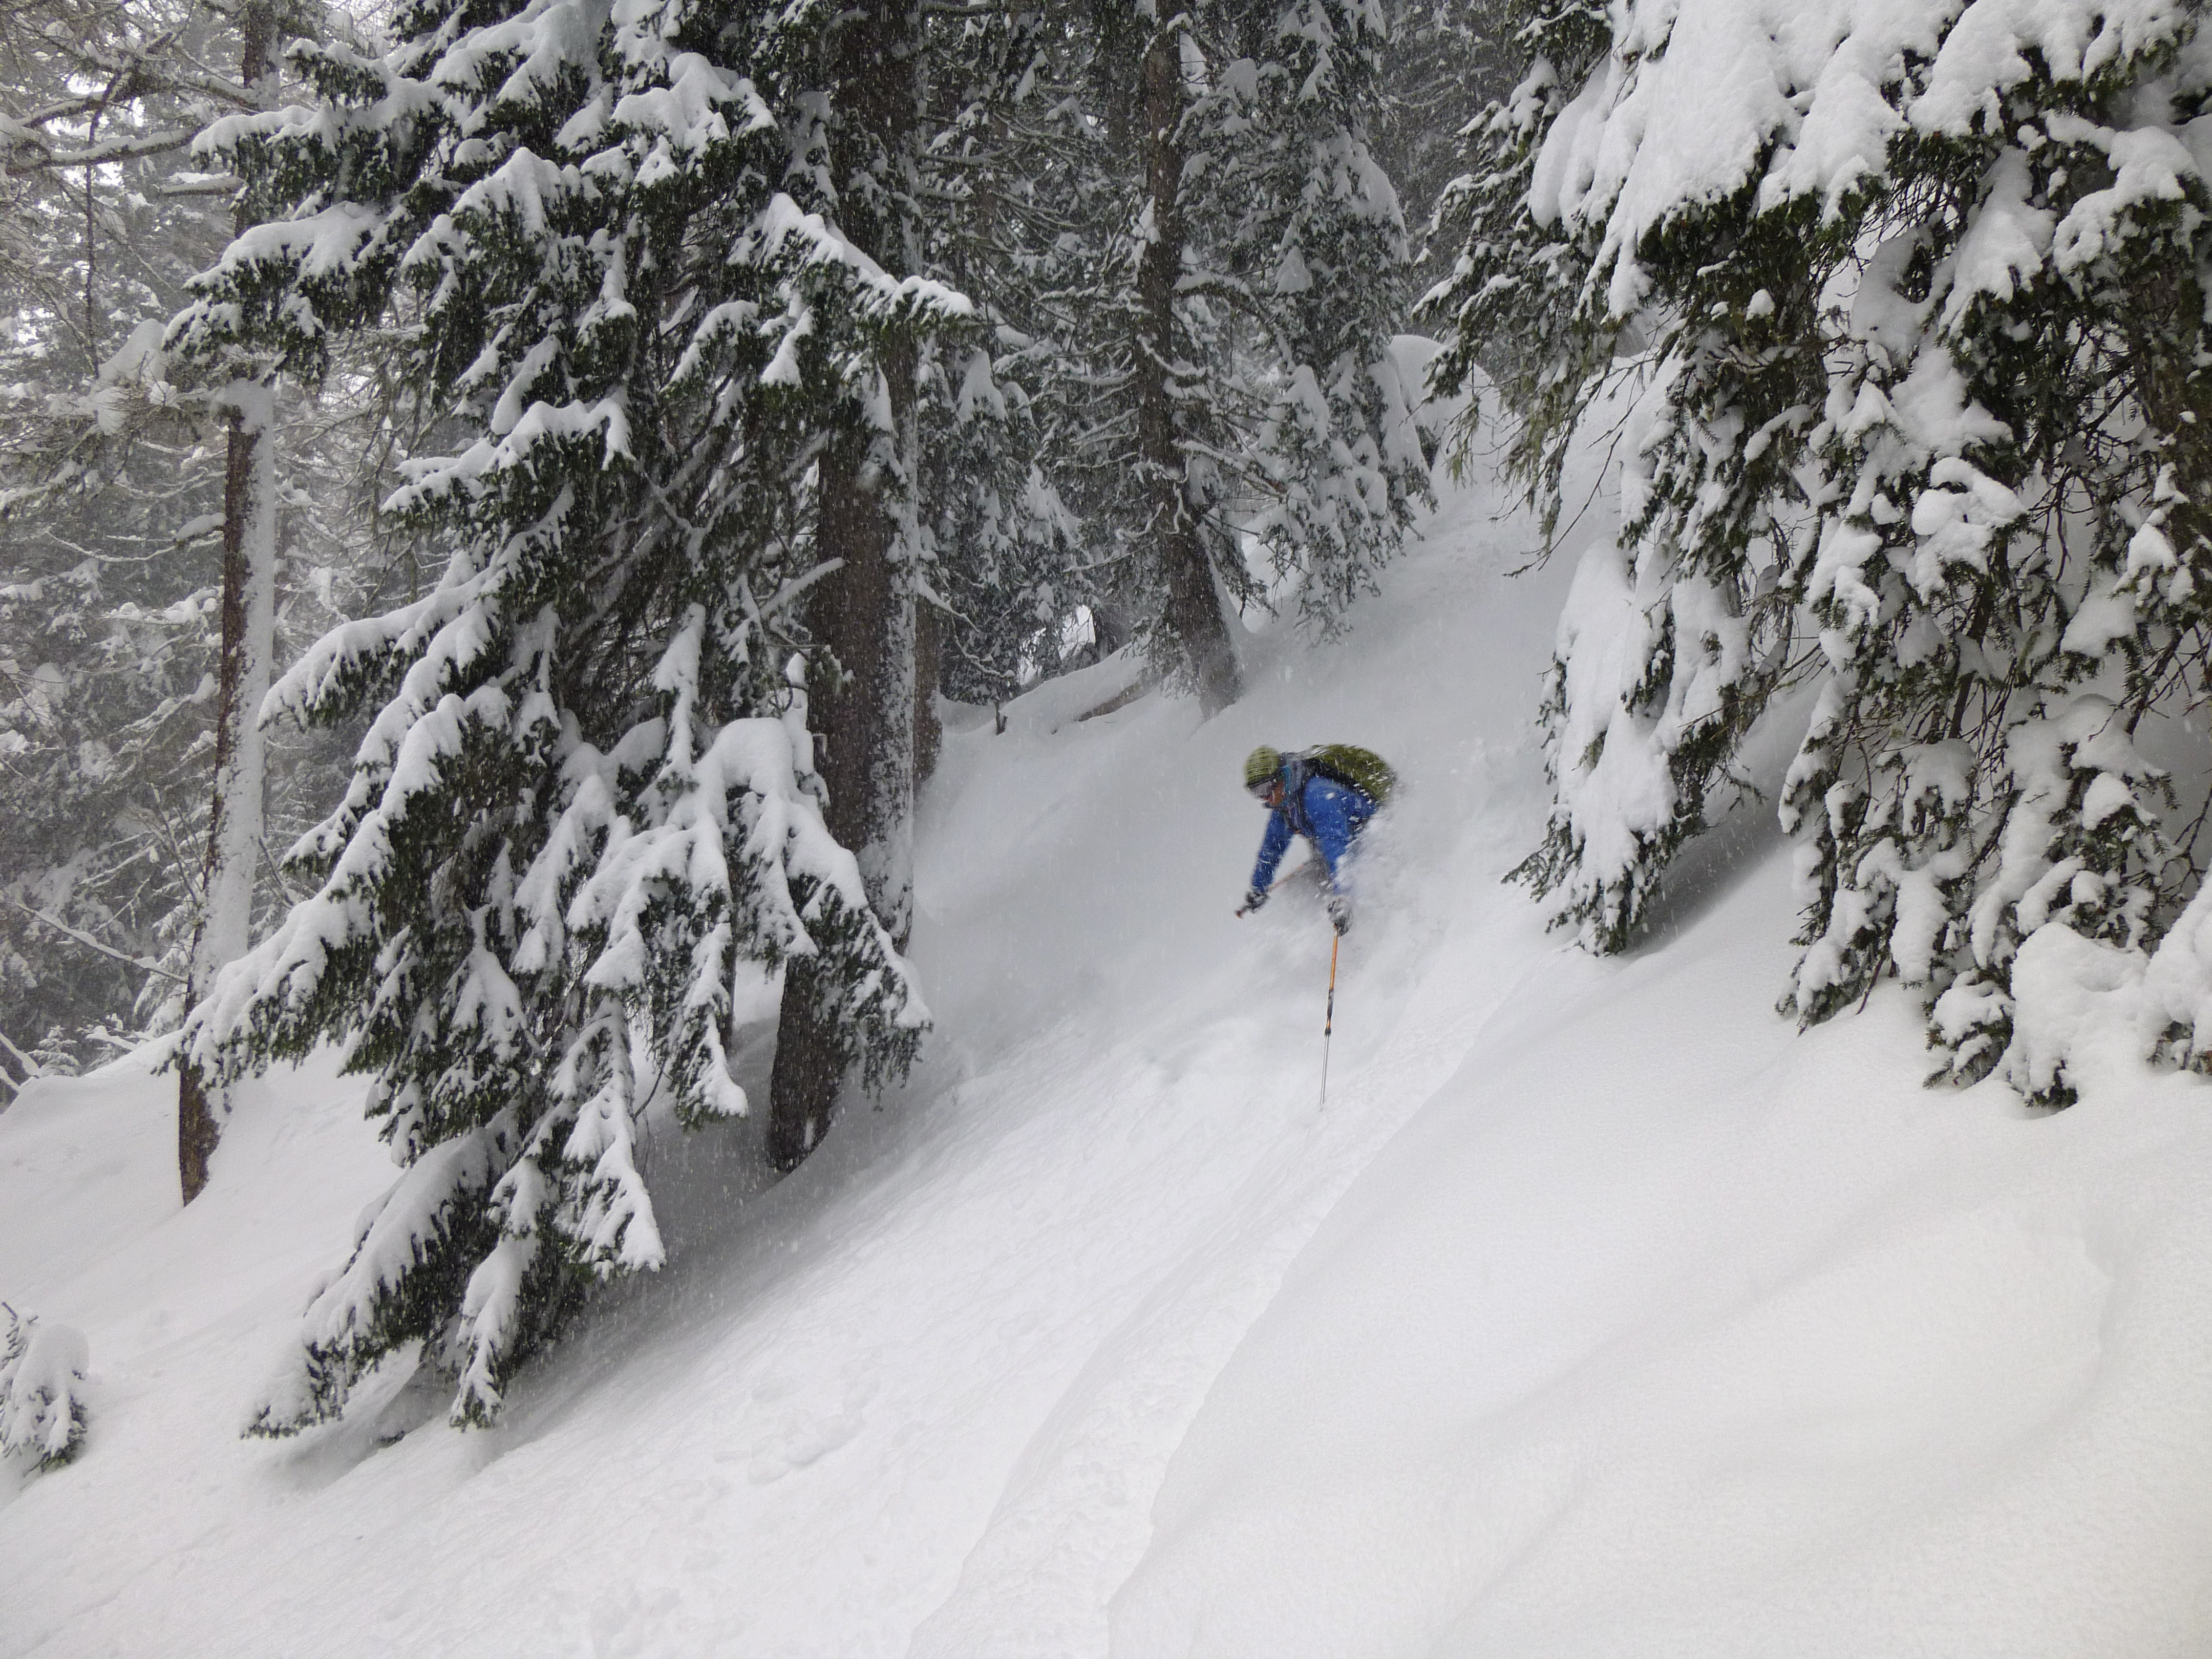 Skiing the trees in Italy last December, yesterdays conditions were similar..